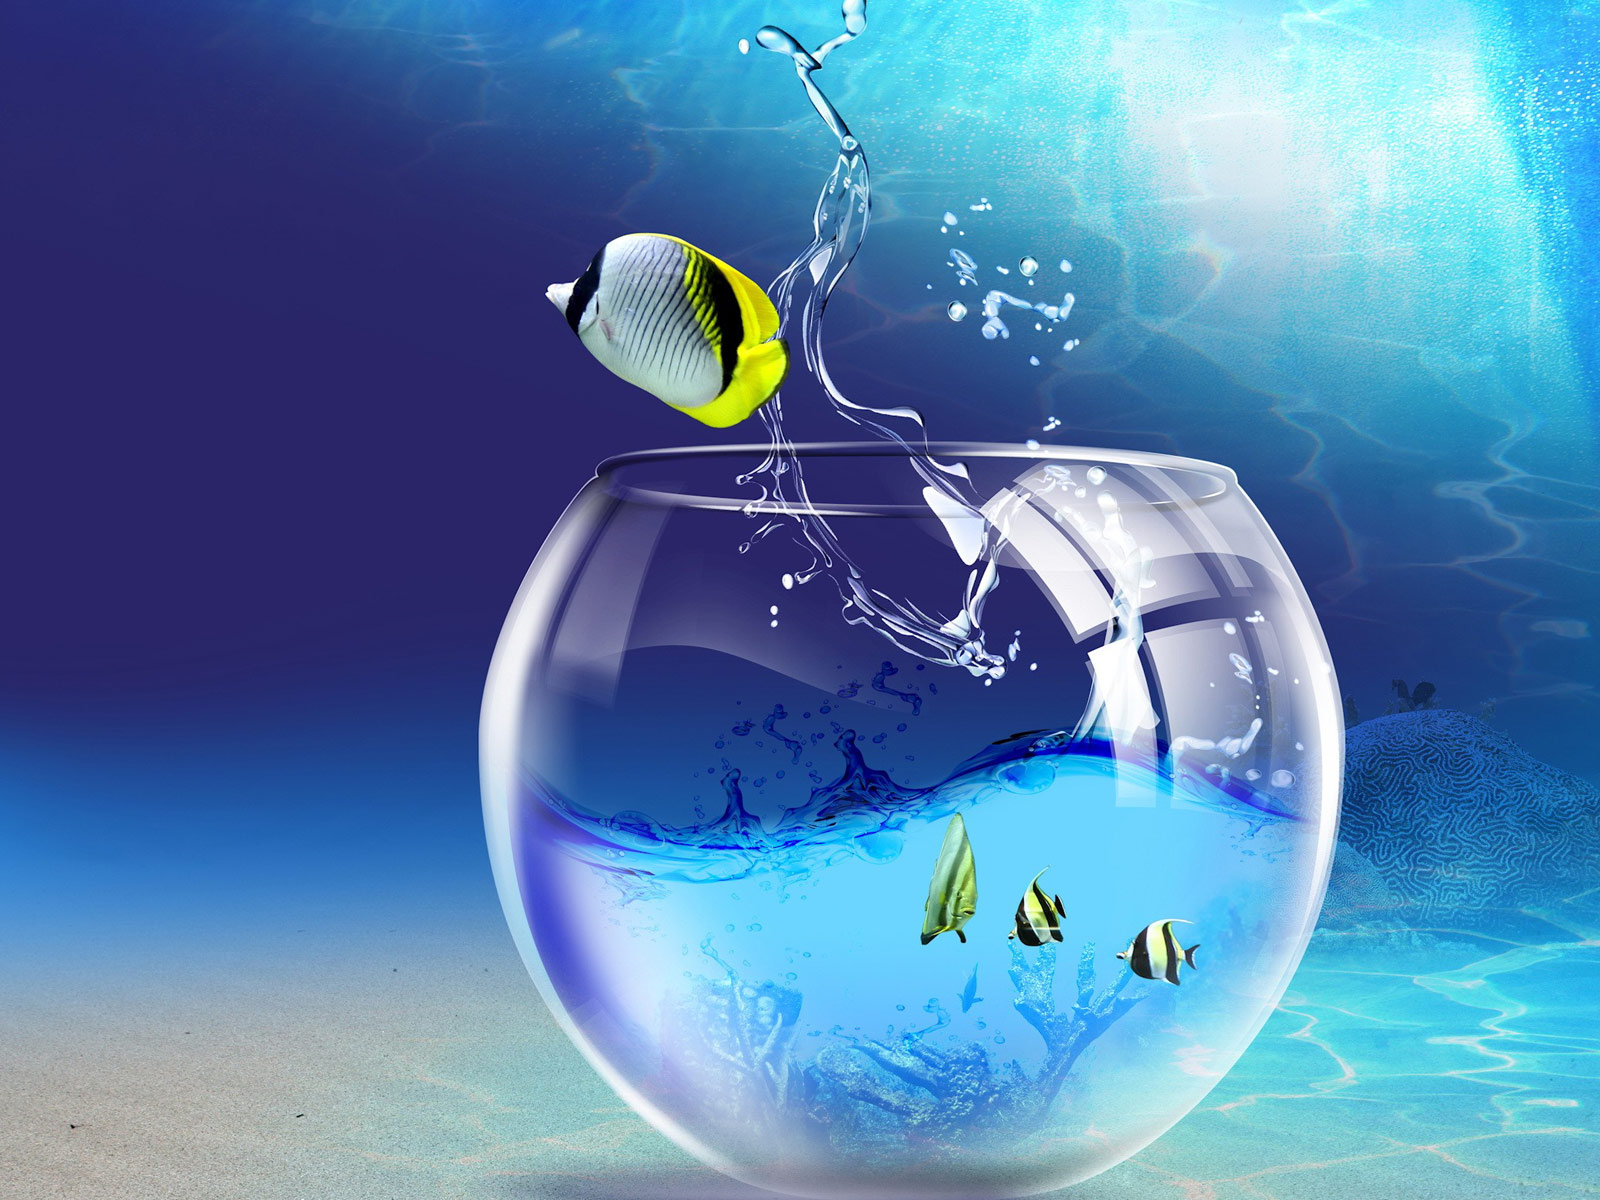 http://4.bp.blogspot.com/-Kv2x_uOligk/TaF5WcZbjYI/AAAAAAAAAMs/zi8W2Go6WVI/s1600/1267152664_1600x1200_windows-7-wallpaper-fish-tank.jpg